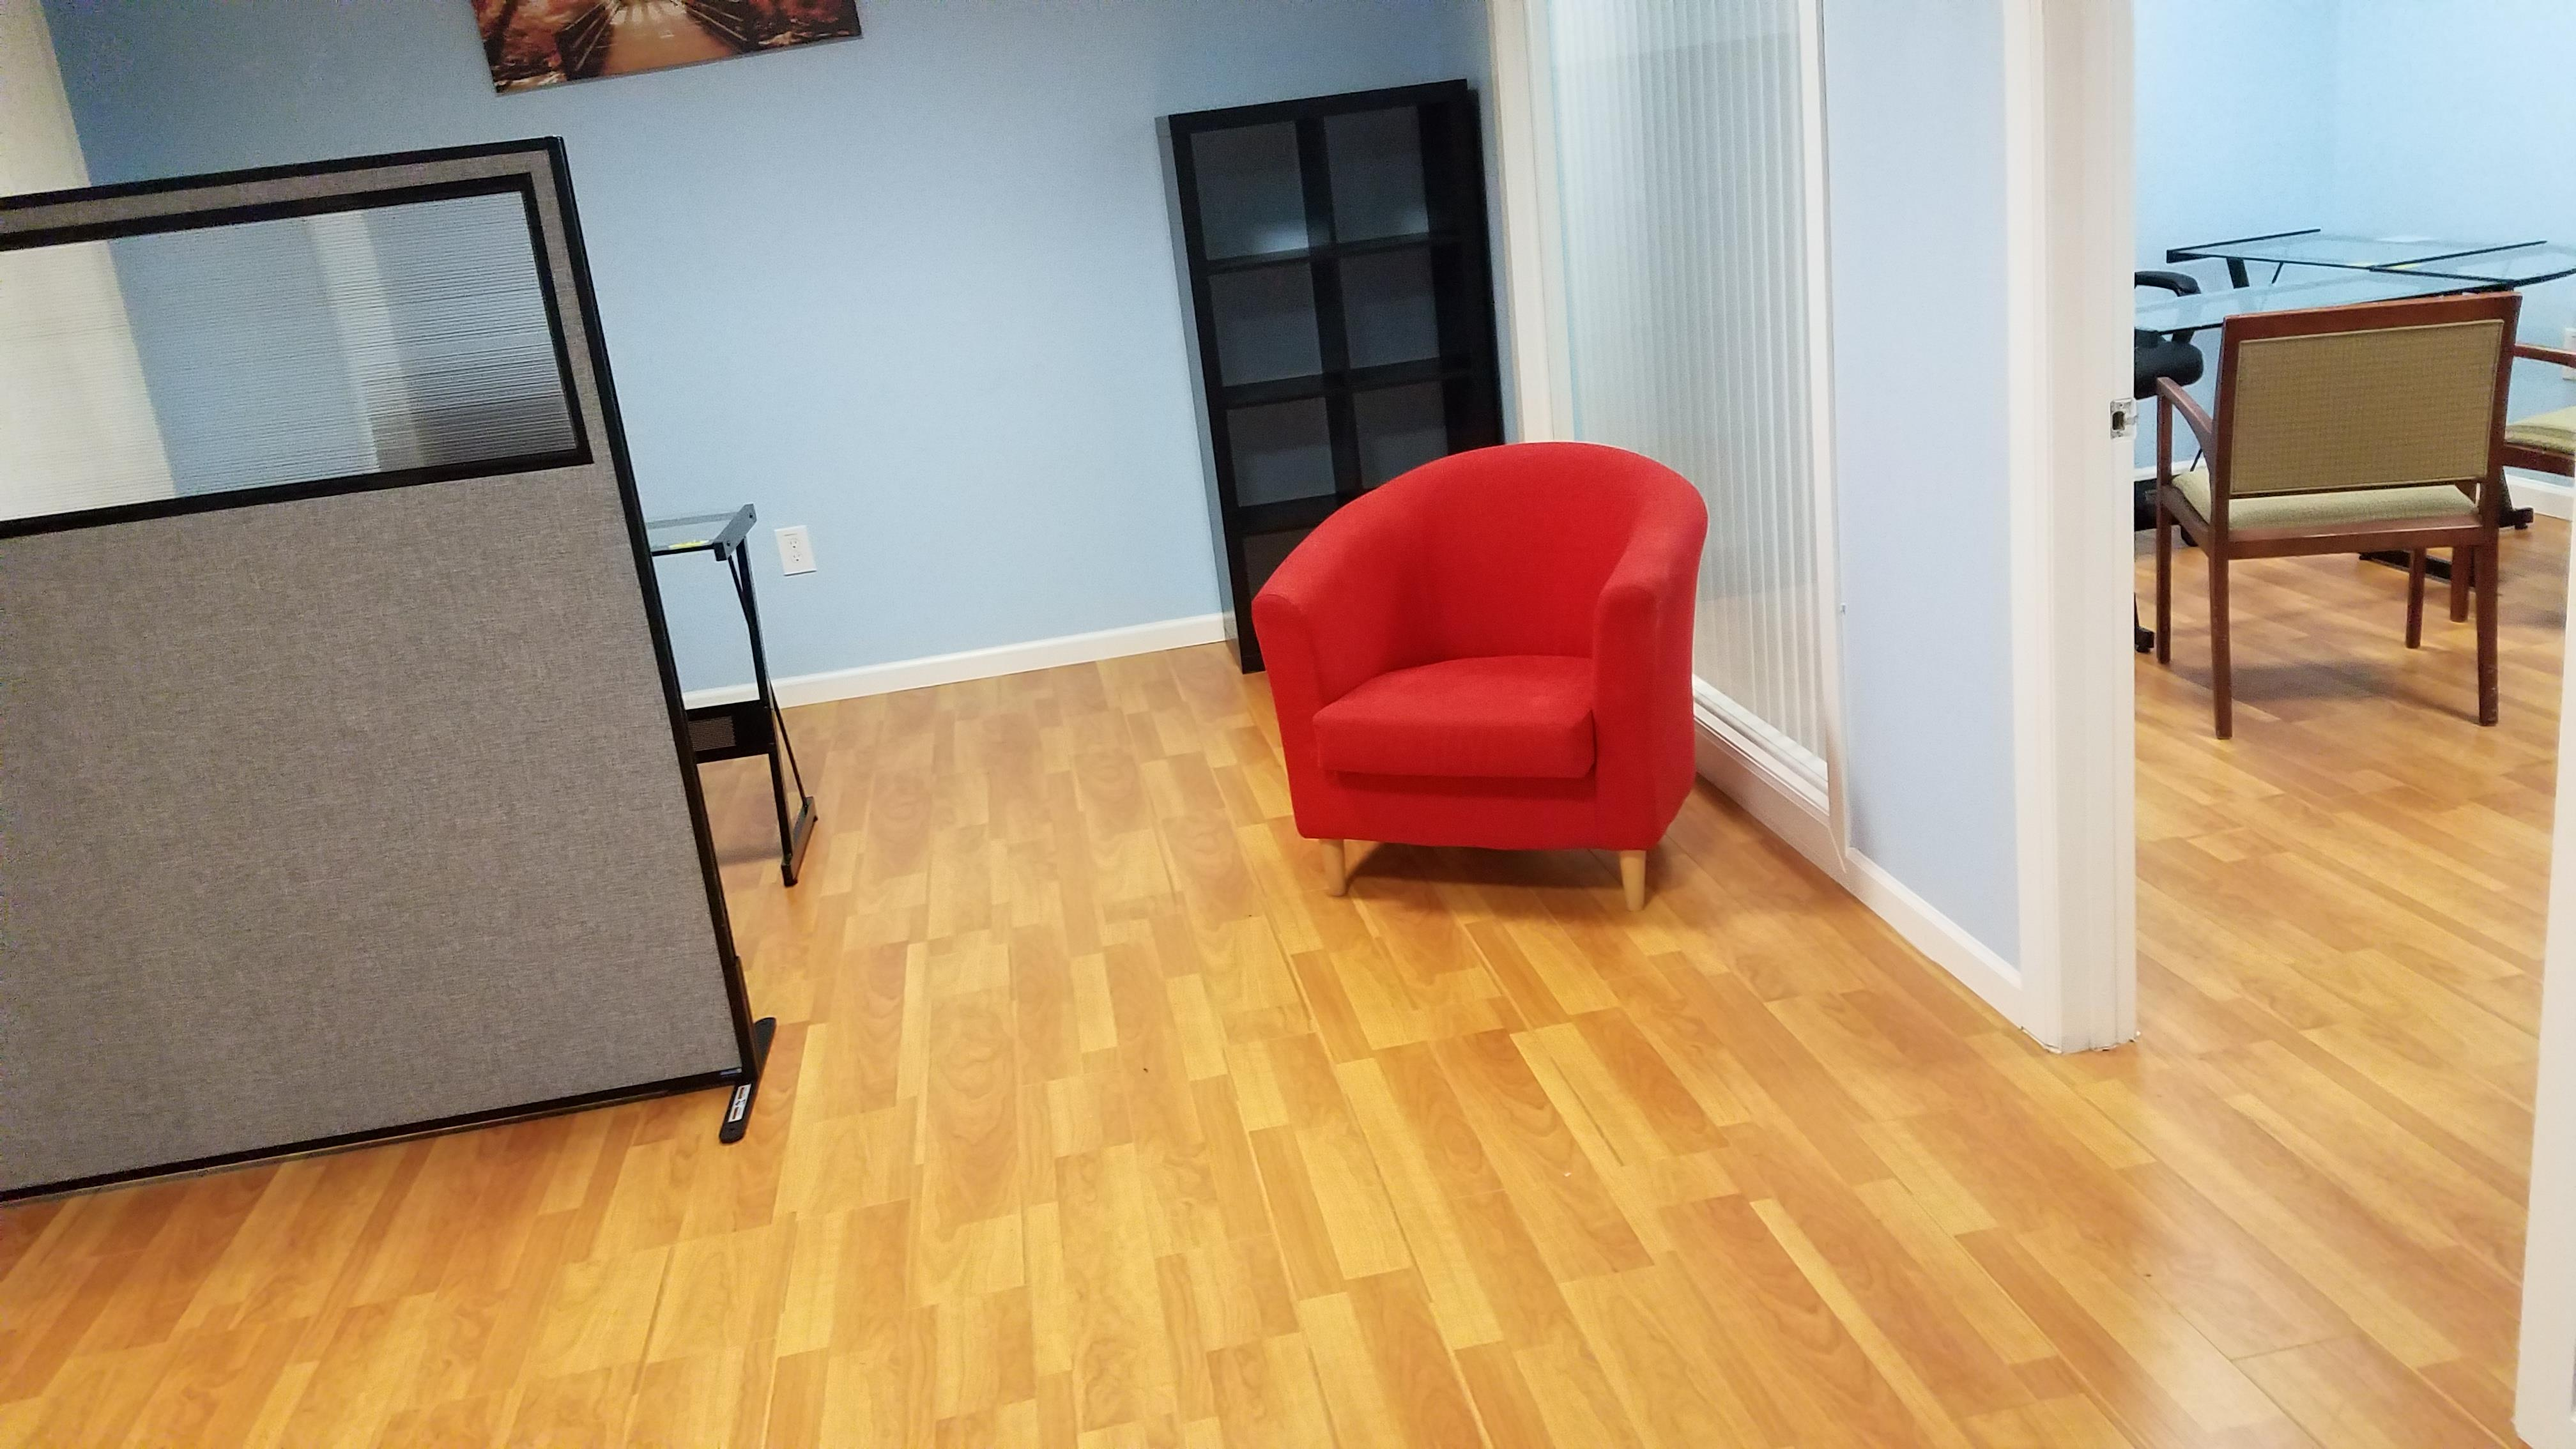 Voltogo - Executive suite office 151 in Sunnyvale